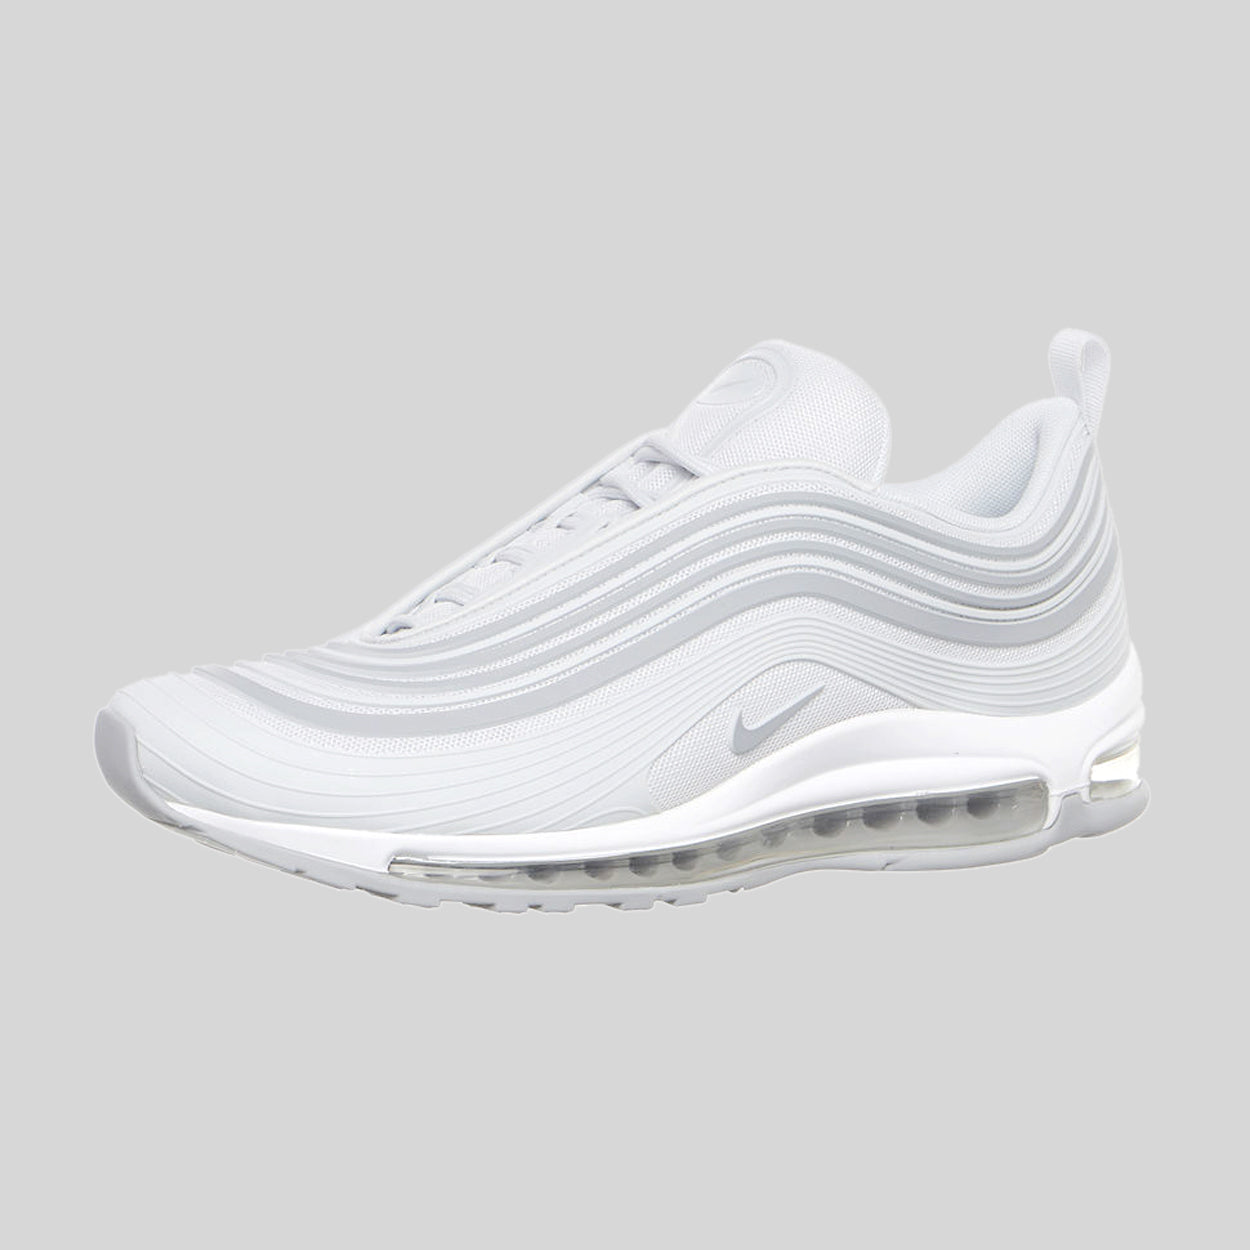 sports shoes 0ec33 479b9 Nike AIR MAX 97 UL 17 PRM Pure Platinum Wolf Grey White